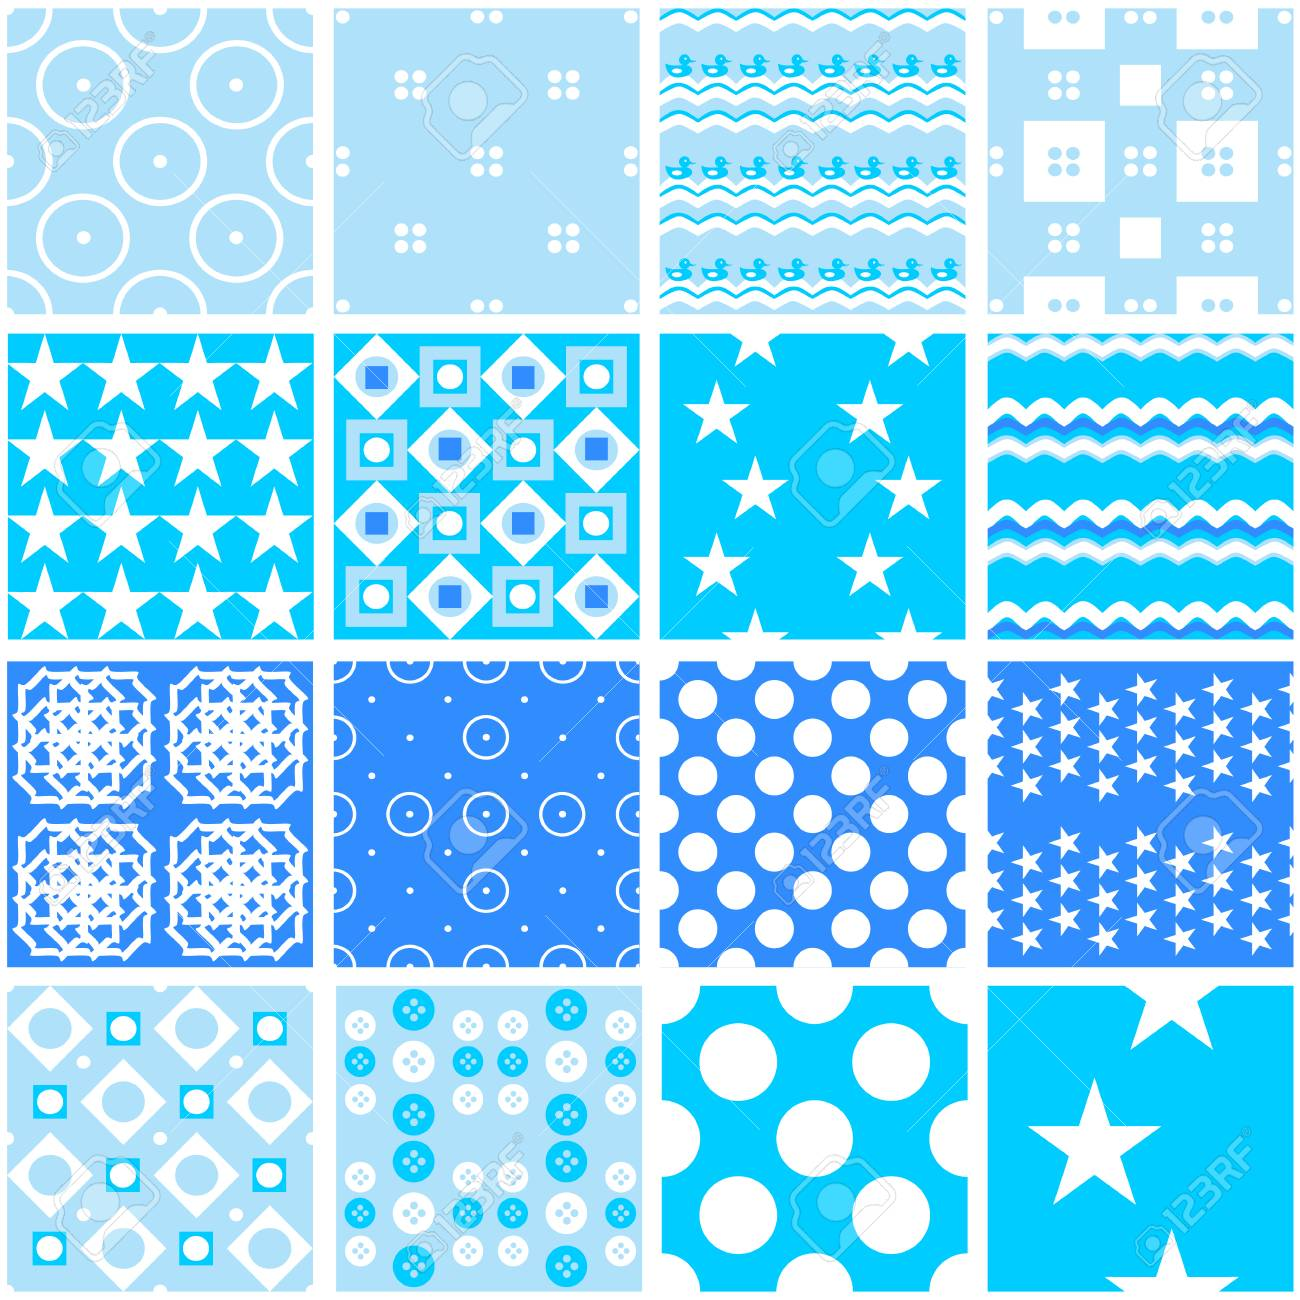 16 Cute Blue Vector Seamless Patterns Endless Texture For Wallpaper Fill Web Page